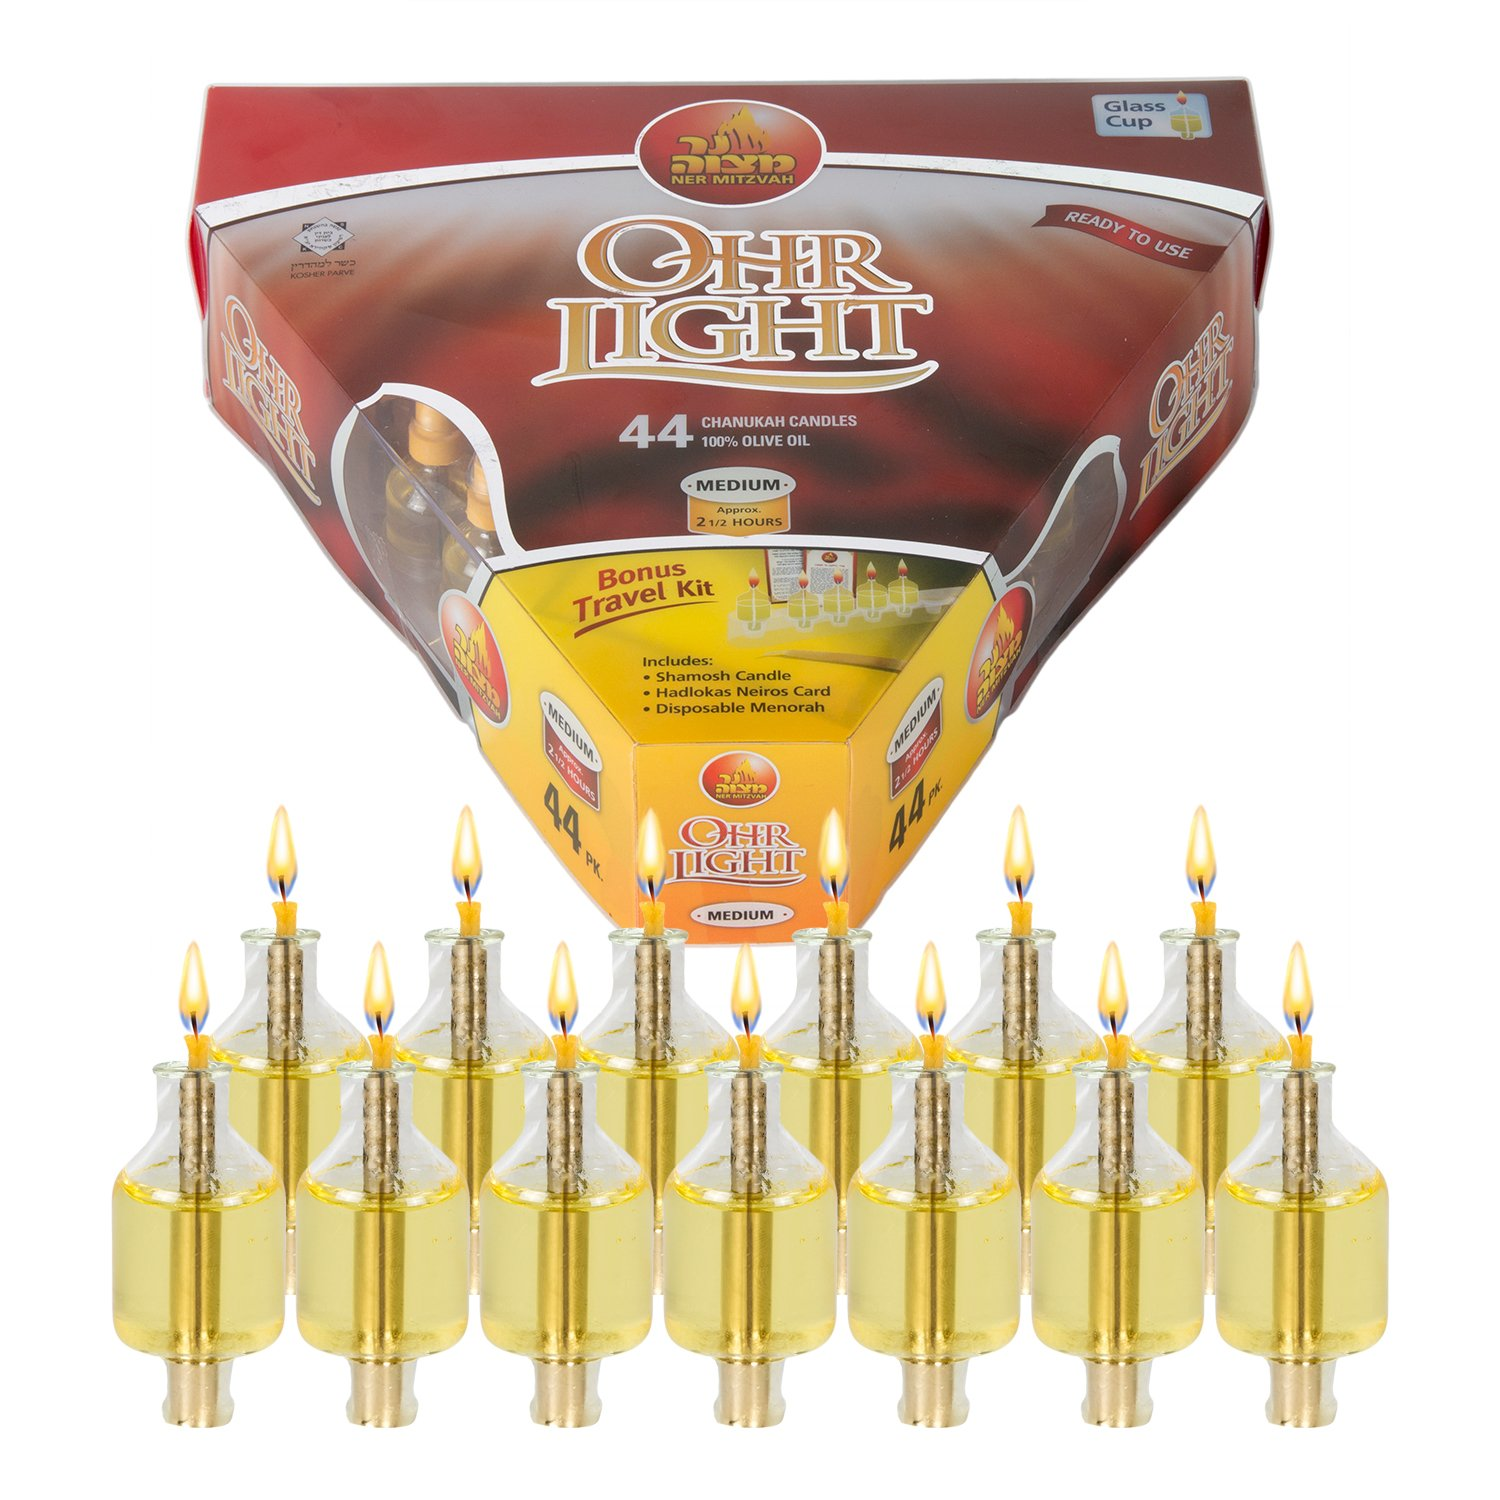 Ner Mitzvah Pre-Filled Menorah Oil Cup Candles - Hanukkah Ohr Lights - 100% Olive Oil with Cotton Wick in Glass Cup - Medium Size, 44 per Pack, Burns Approx. 2 1/2 Hrs by Ner Mitzvah